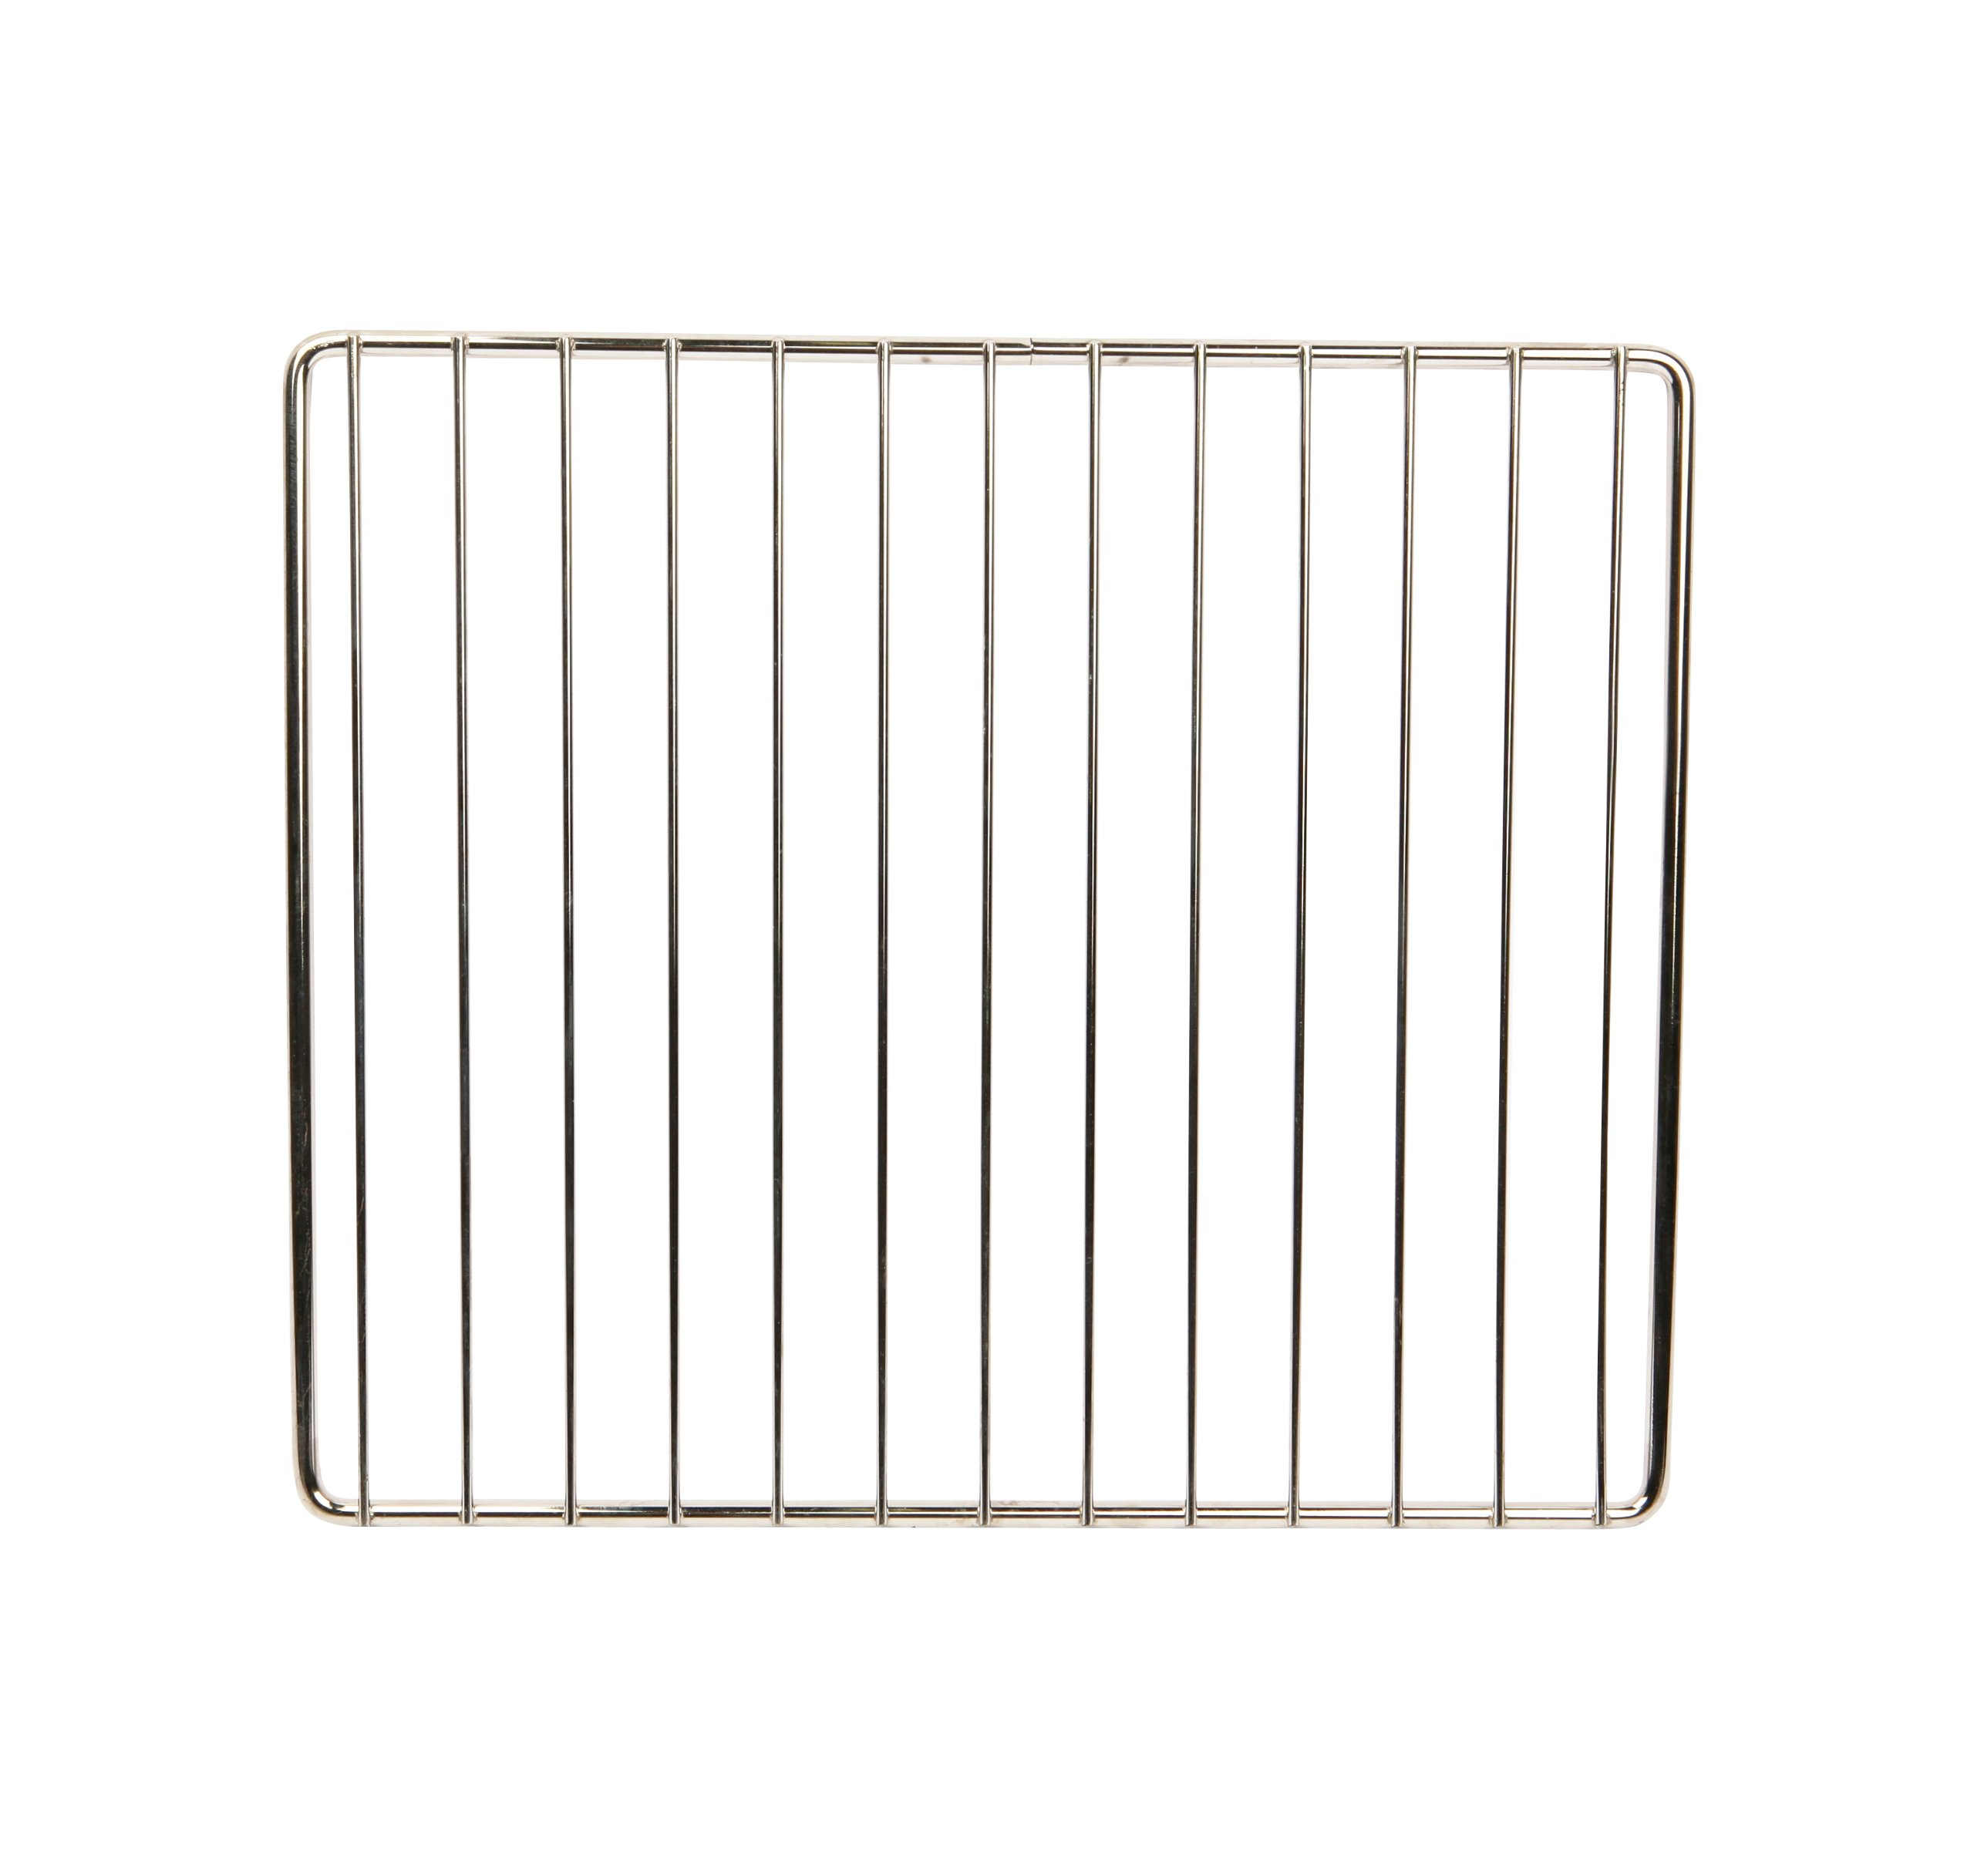 PITCO PP10434 Wire Rack